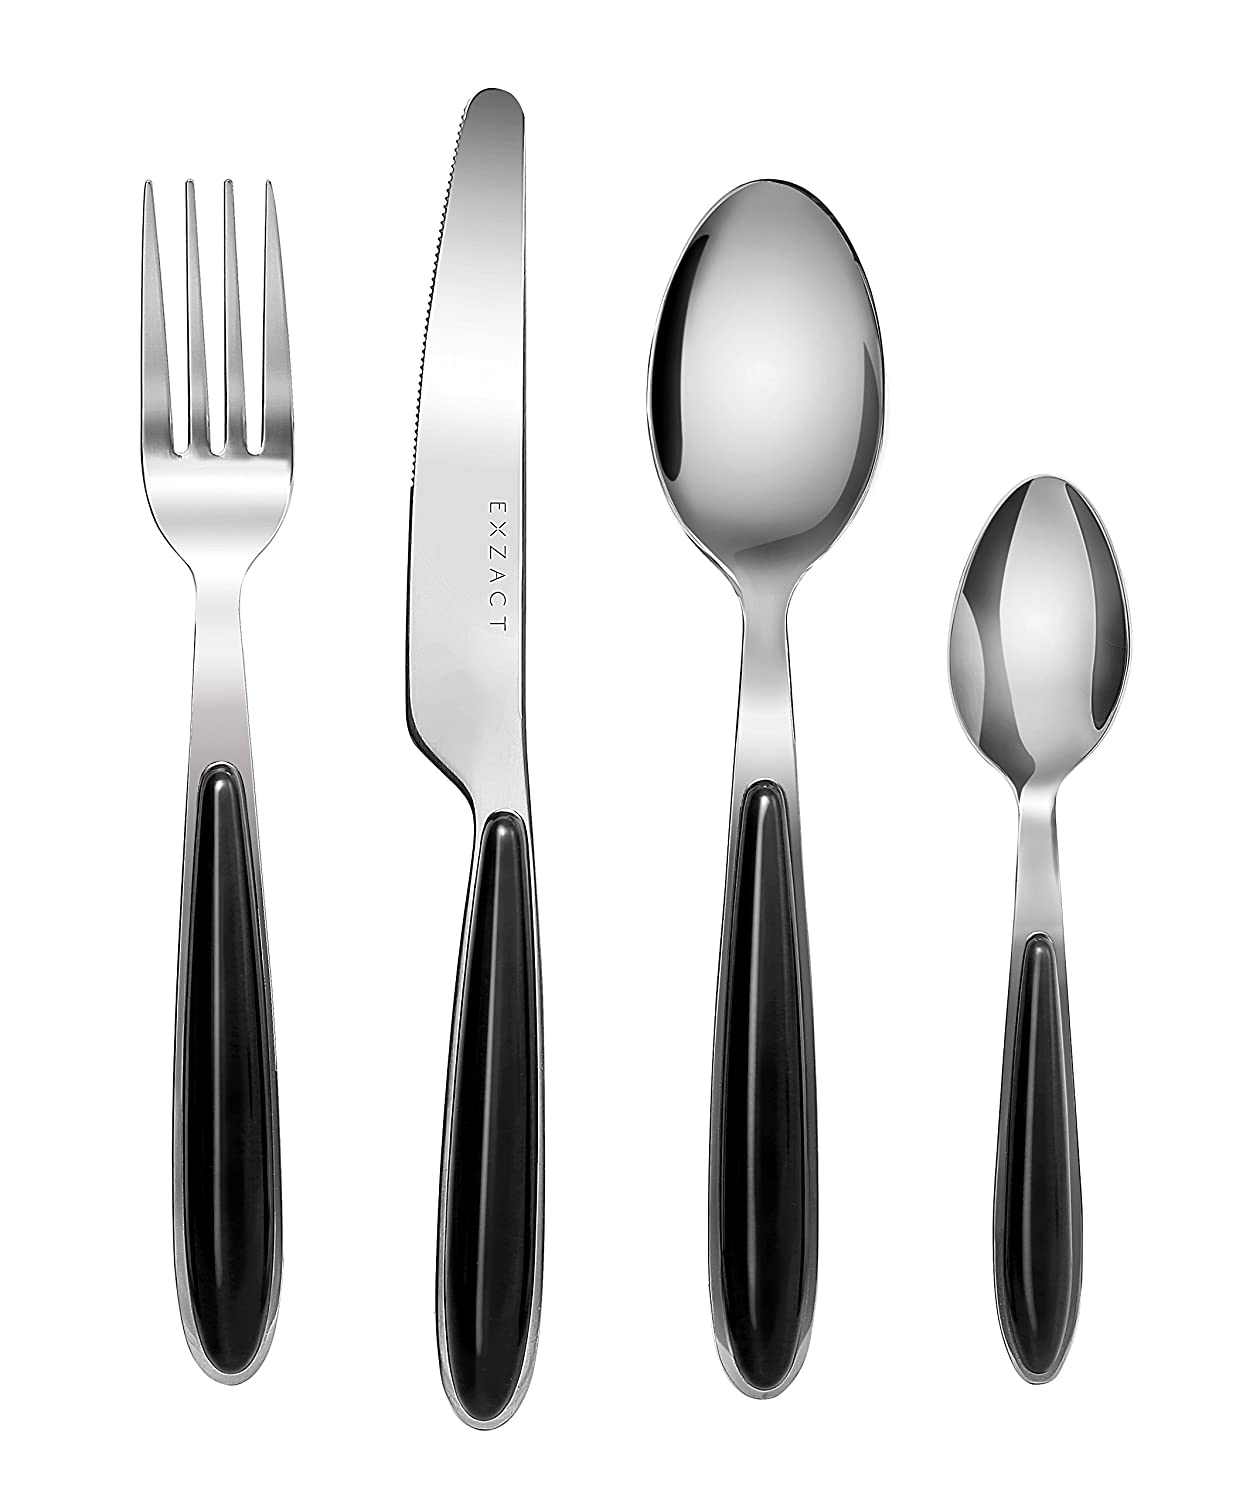 EXZACT EX07-16 PCS Cutlery Set - stainless steel with color handles - 4 Forks, 4 Dinner Knives, 4 Dinner Spoons, 4 Teaspoons (Black x 16) Exerz Limited